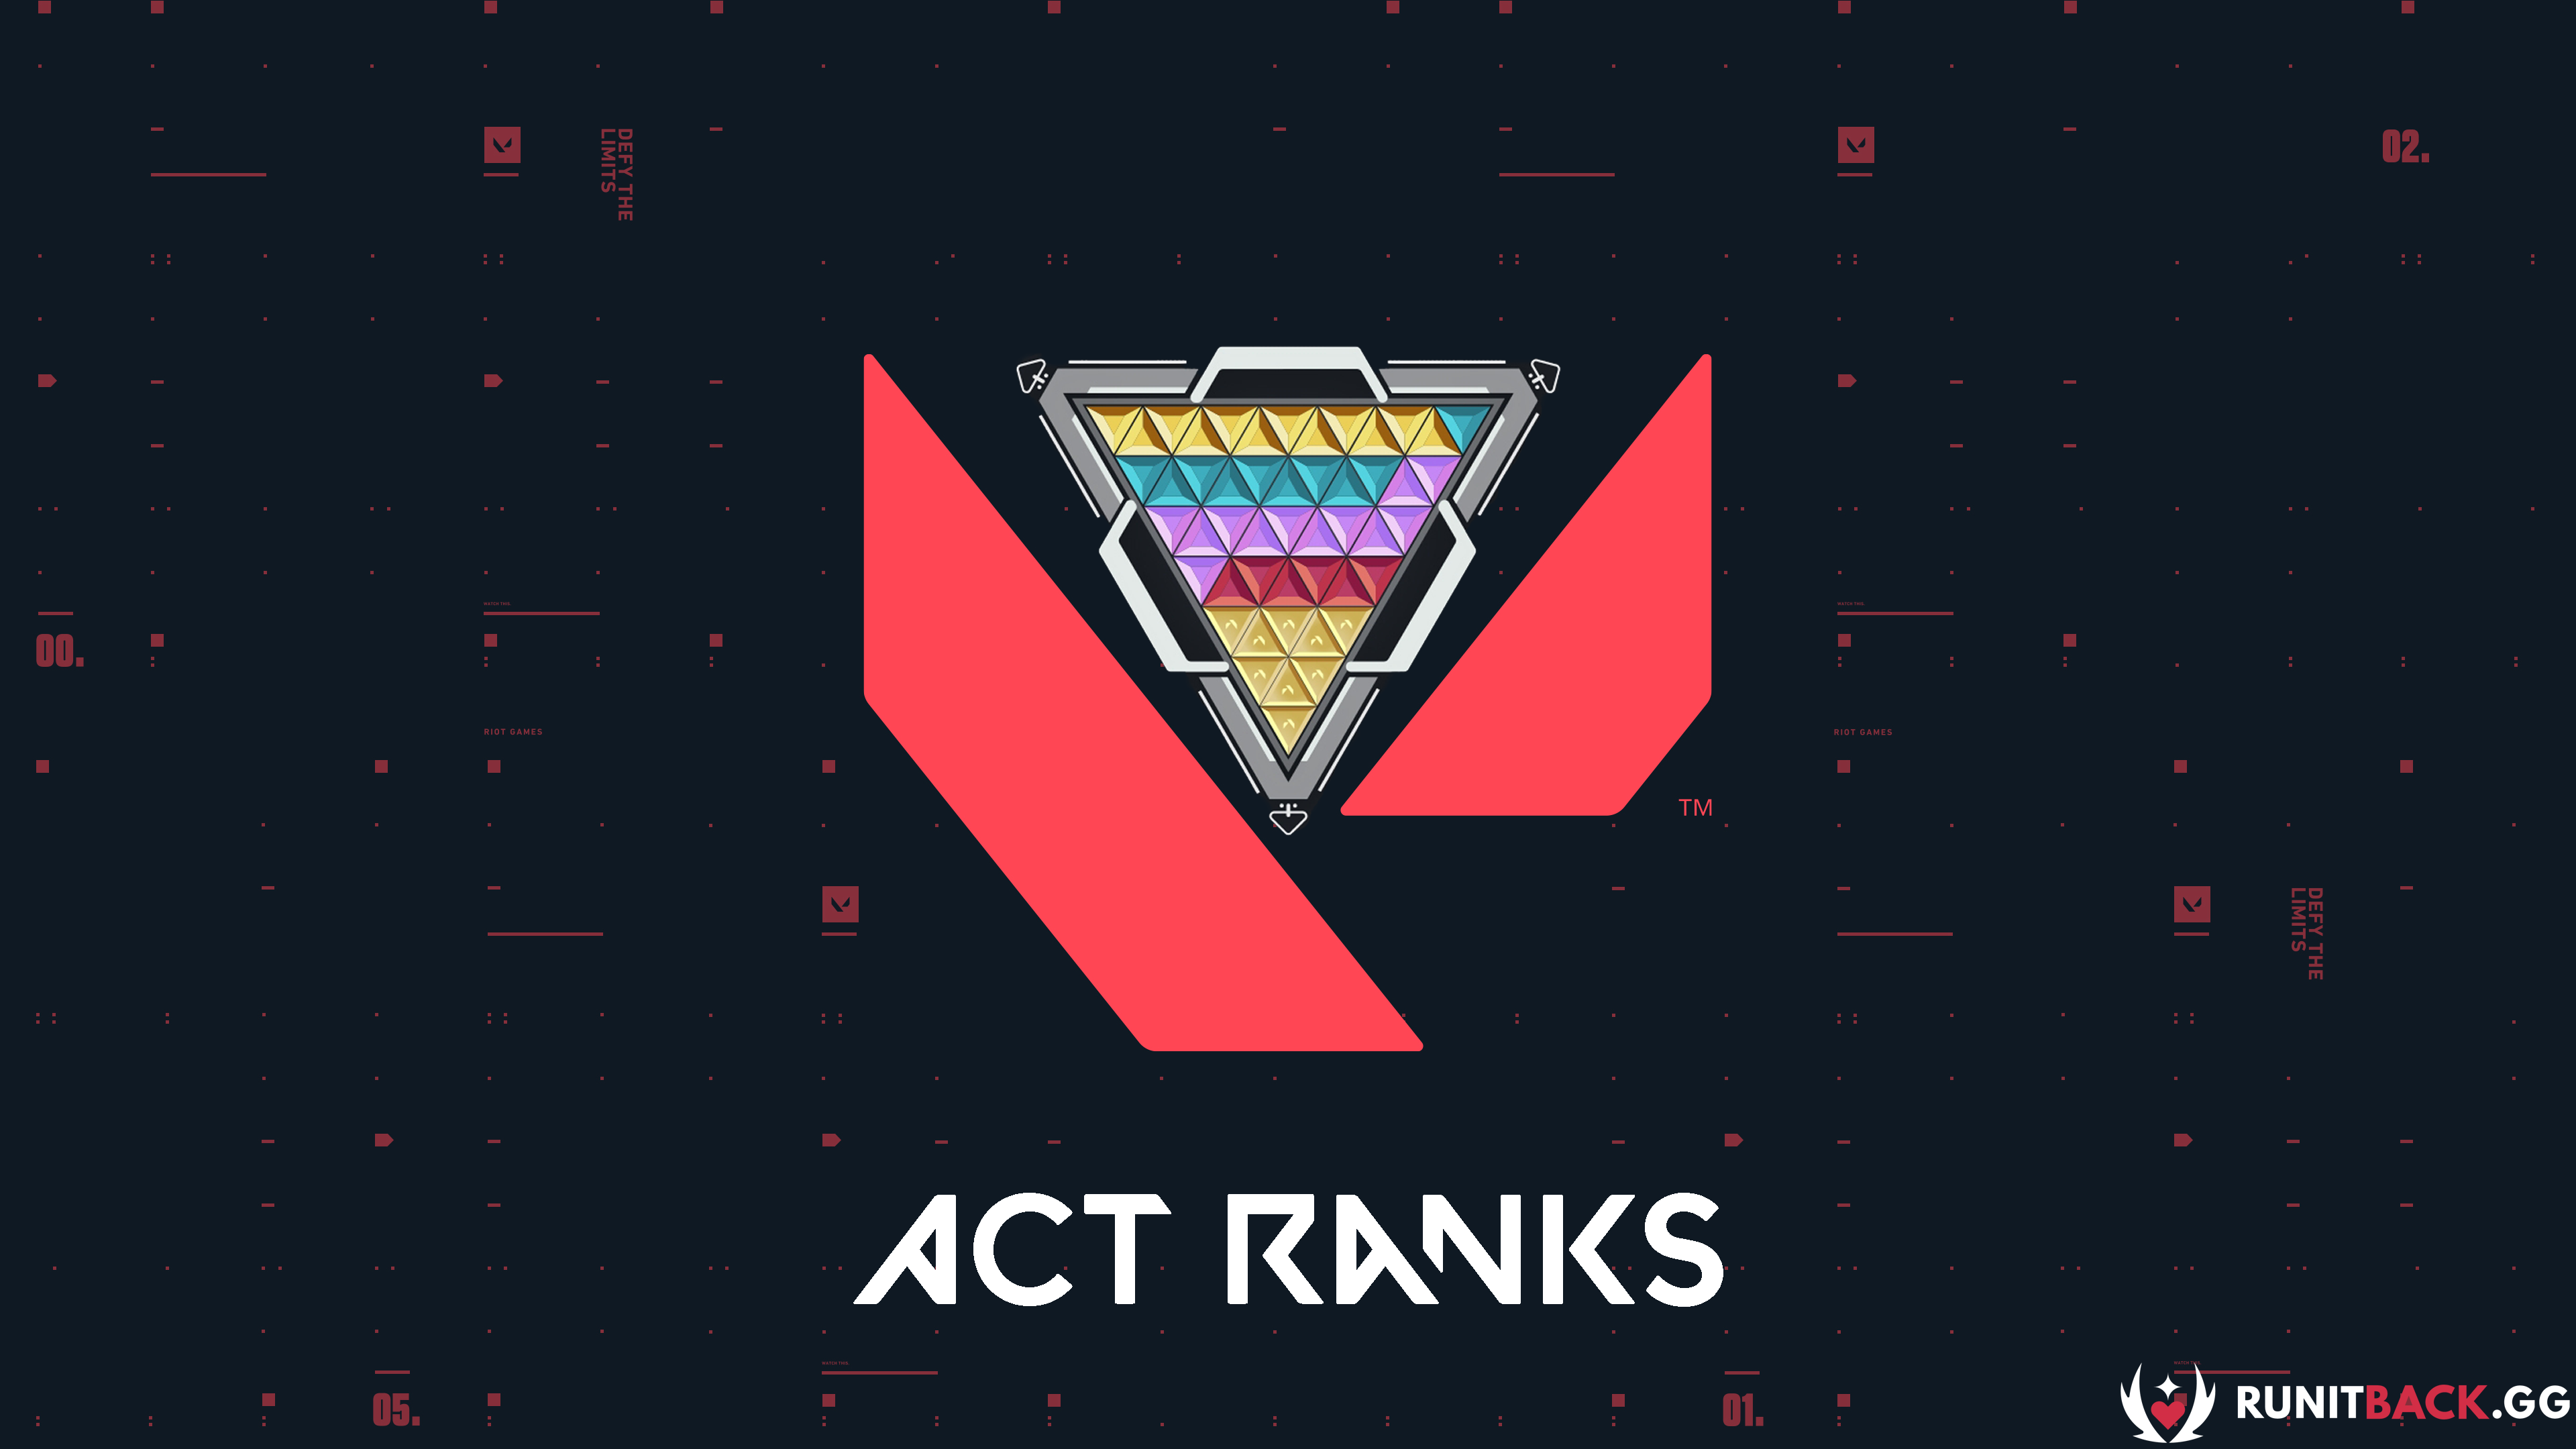 The Ups and Downs of the Act Rank System